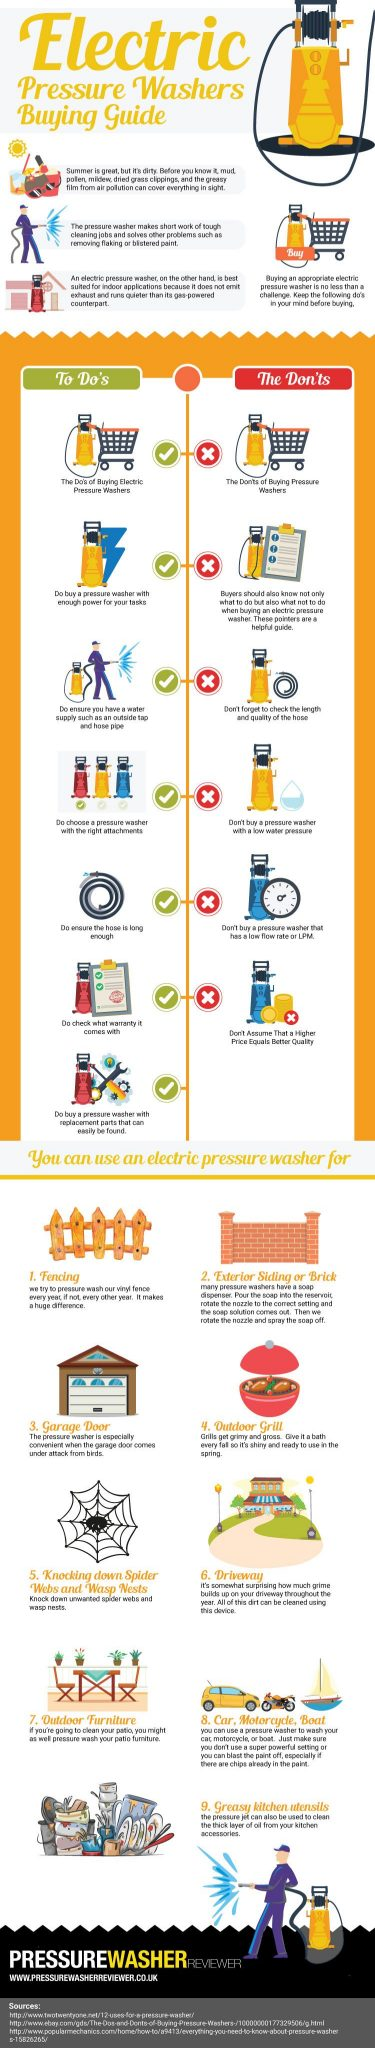 Pressure Washer Buying Guide Infographic